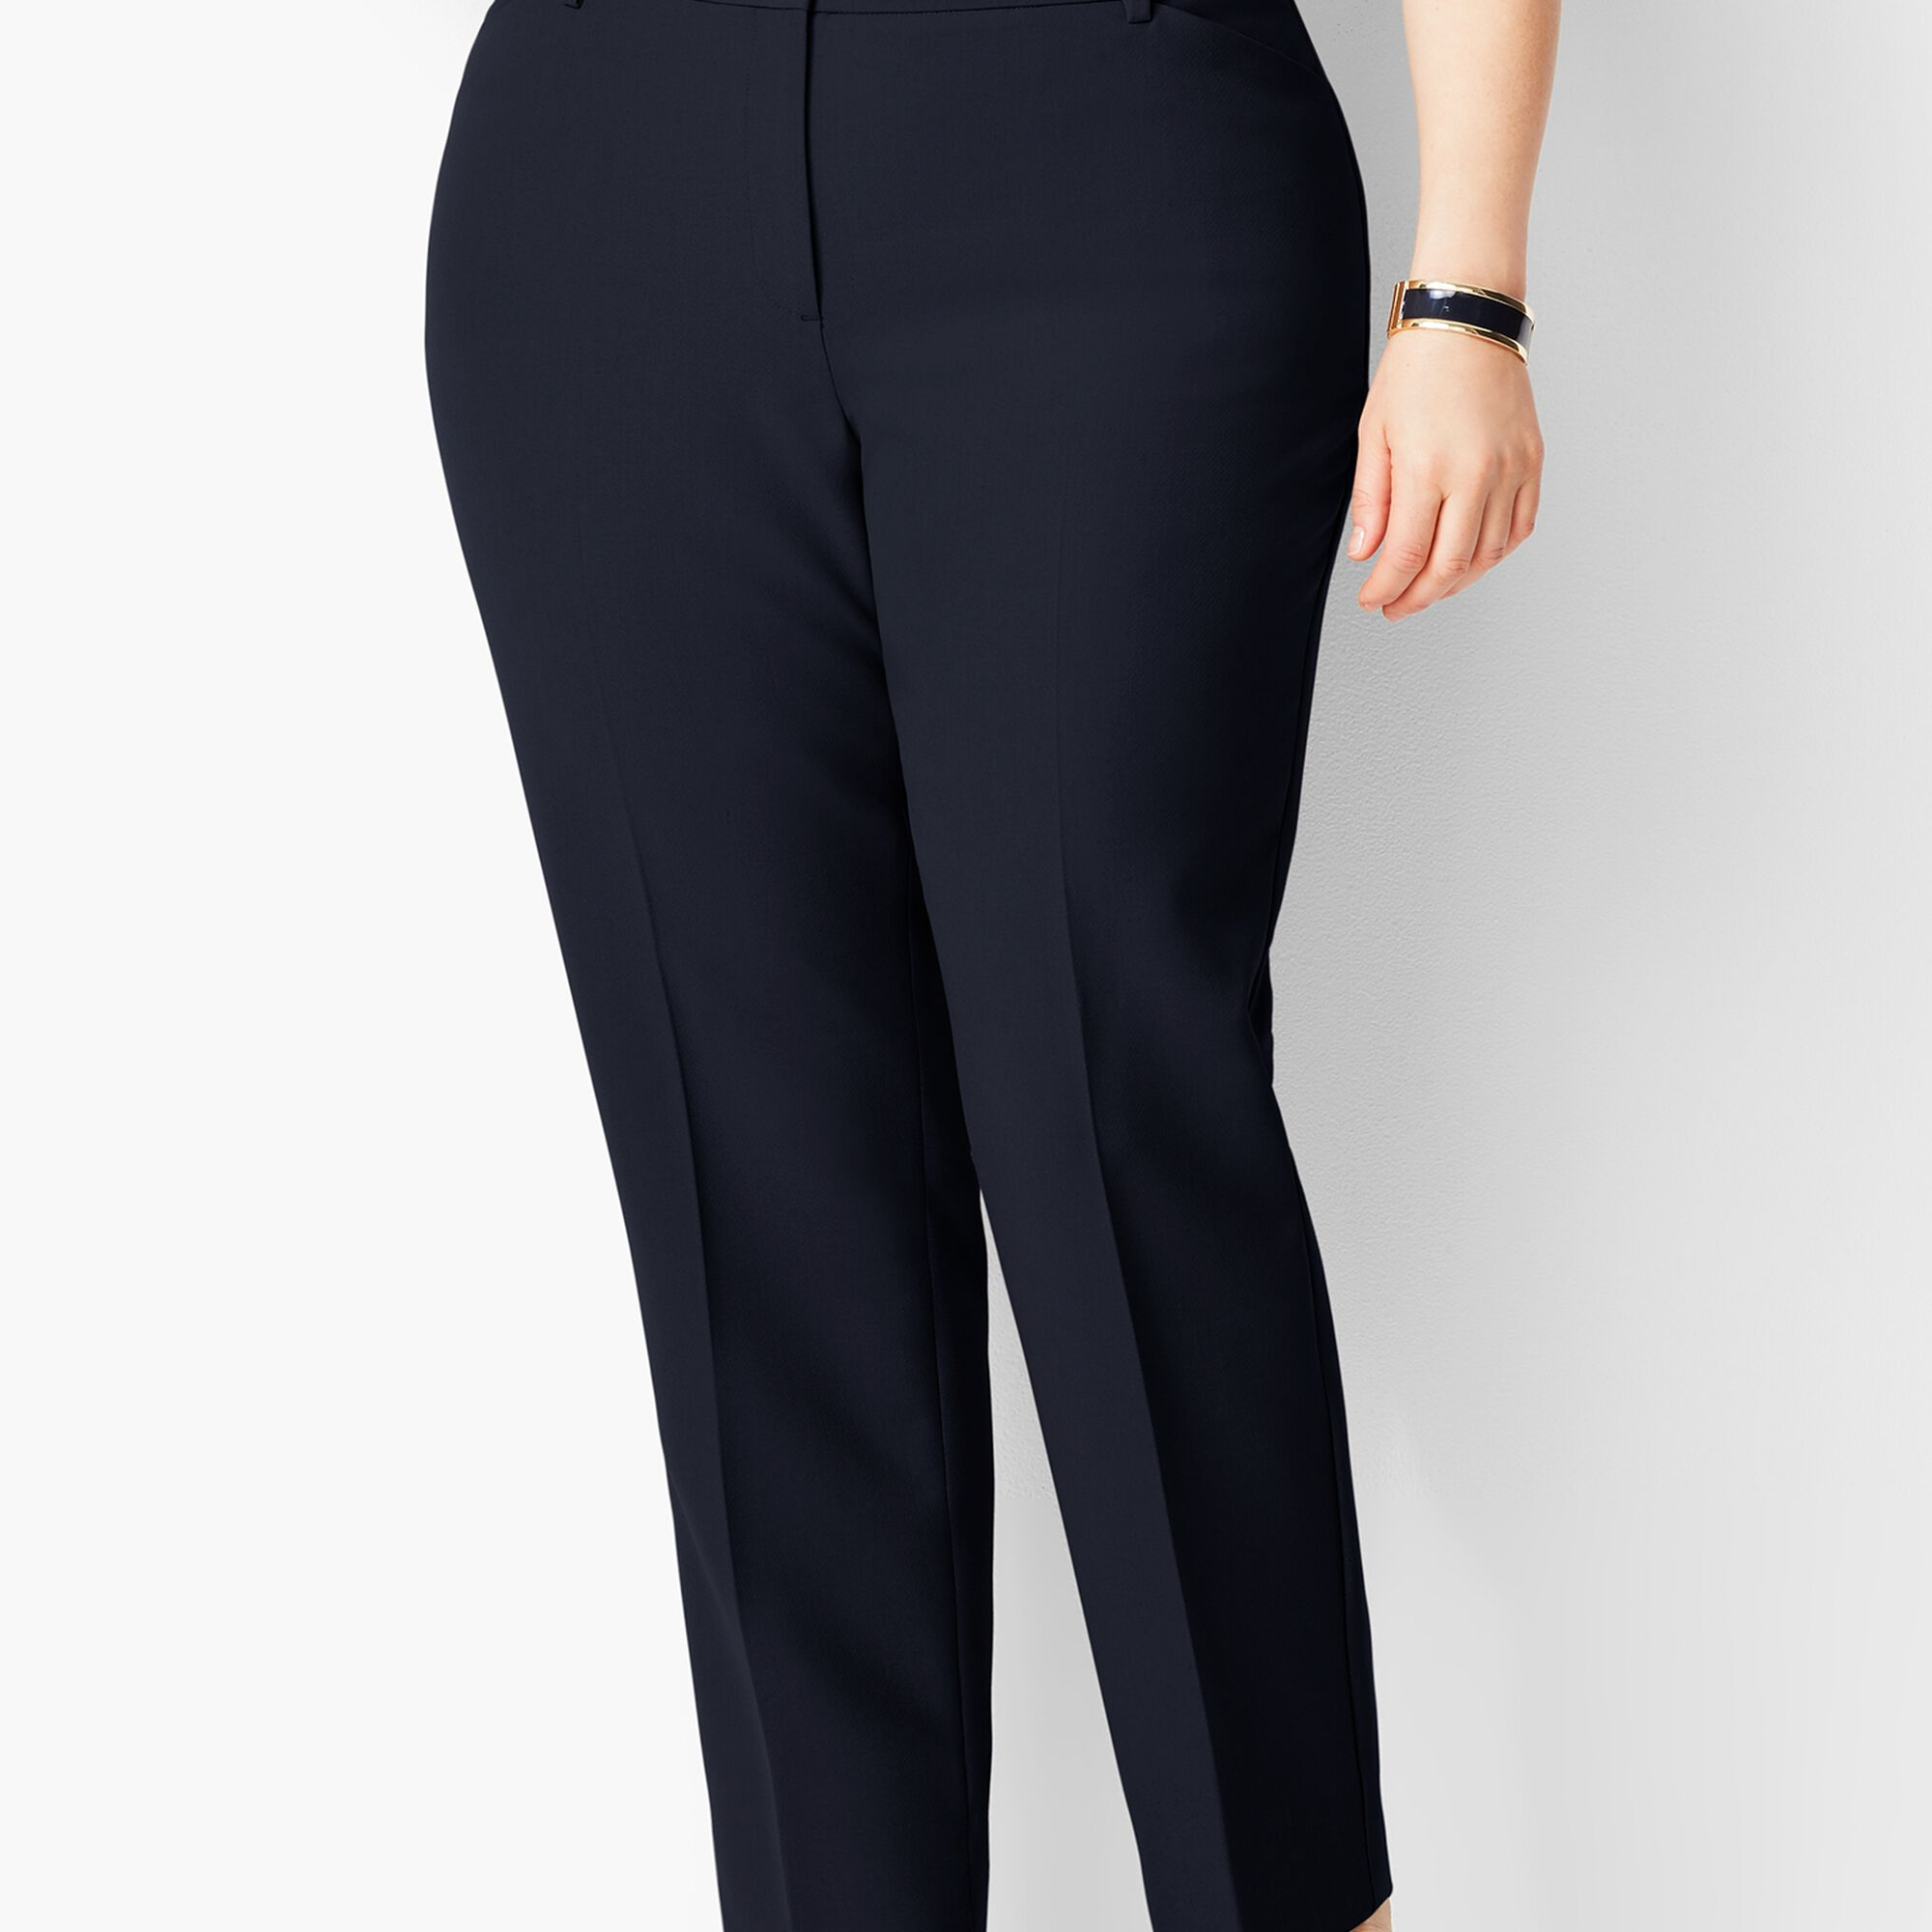 58acc5e9c8 Plus Size High-Waist Tailored Ankle Pant - Curvy Fit